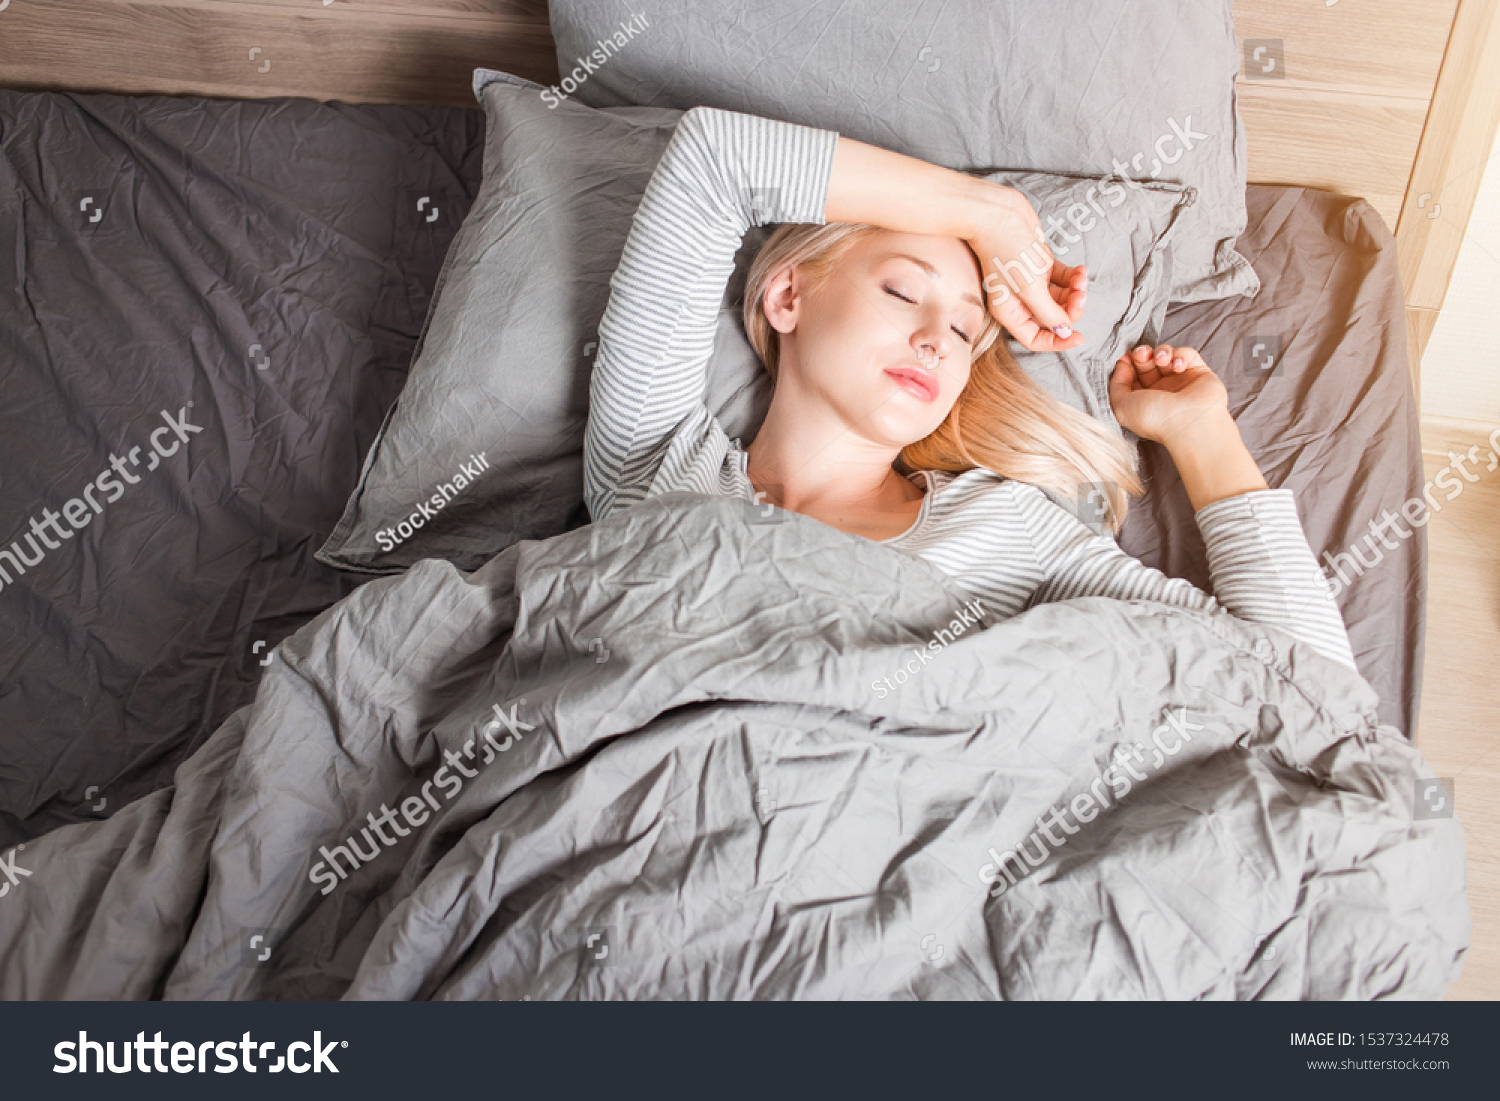 Caucasian beautiful restful blonde woman lying in bed and sleeping peacefully in morning, enjoying comfort and softness of bedclothes, wearing striped sleepwear. Good rest and bed time. Top view. #1537324478